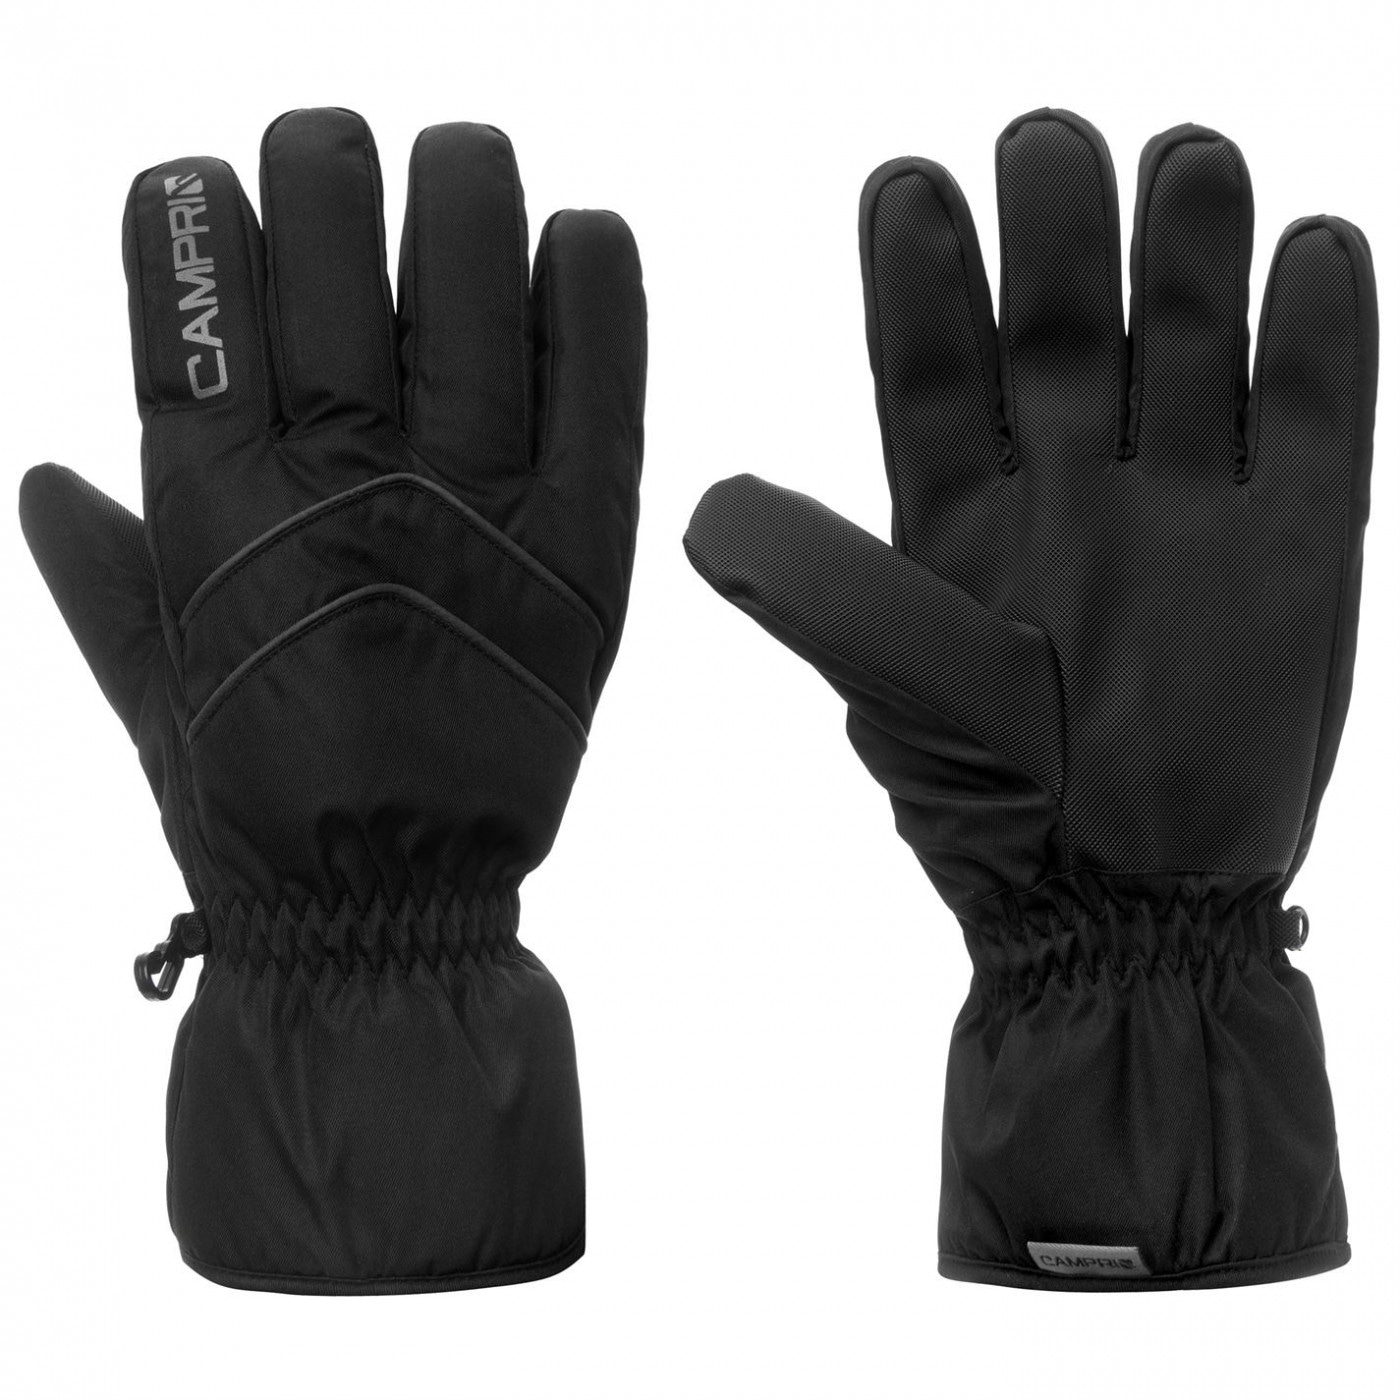 Campri Ski Gloves Mens